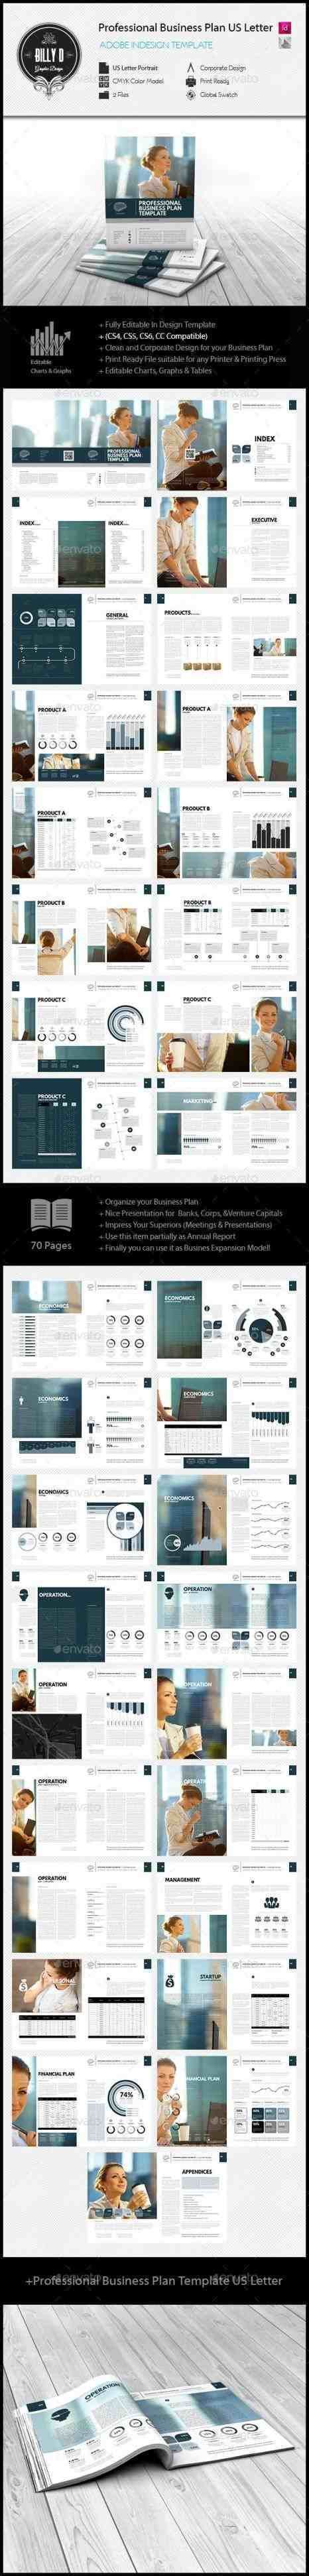 Self storage business plan template free tamplate pinterest self storage business plan template cheaphphosting Images